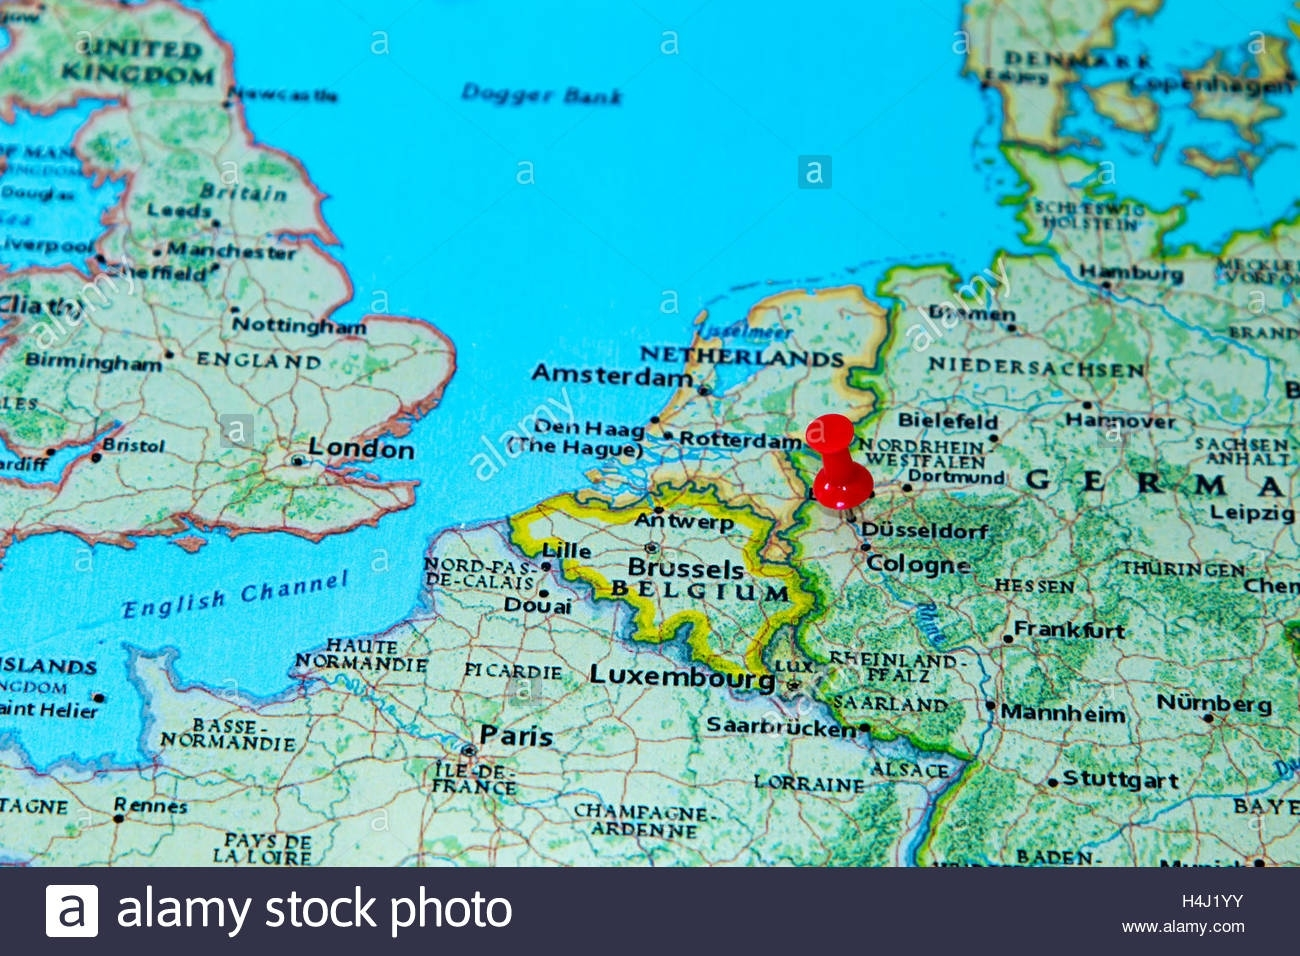 Dusseldorf, Germany Pinned On A Map Of Europe Stock Photo: 123327903 within Dusseldorf Germany Map